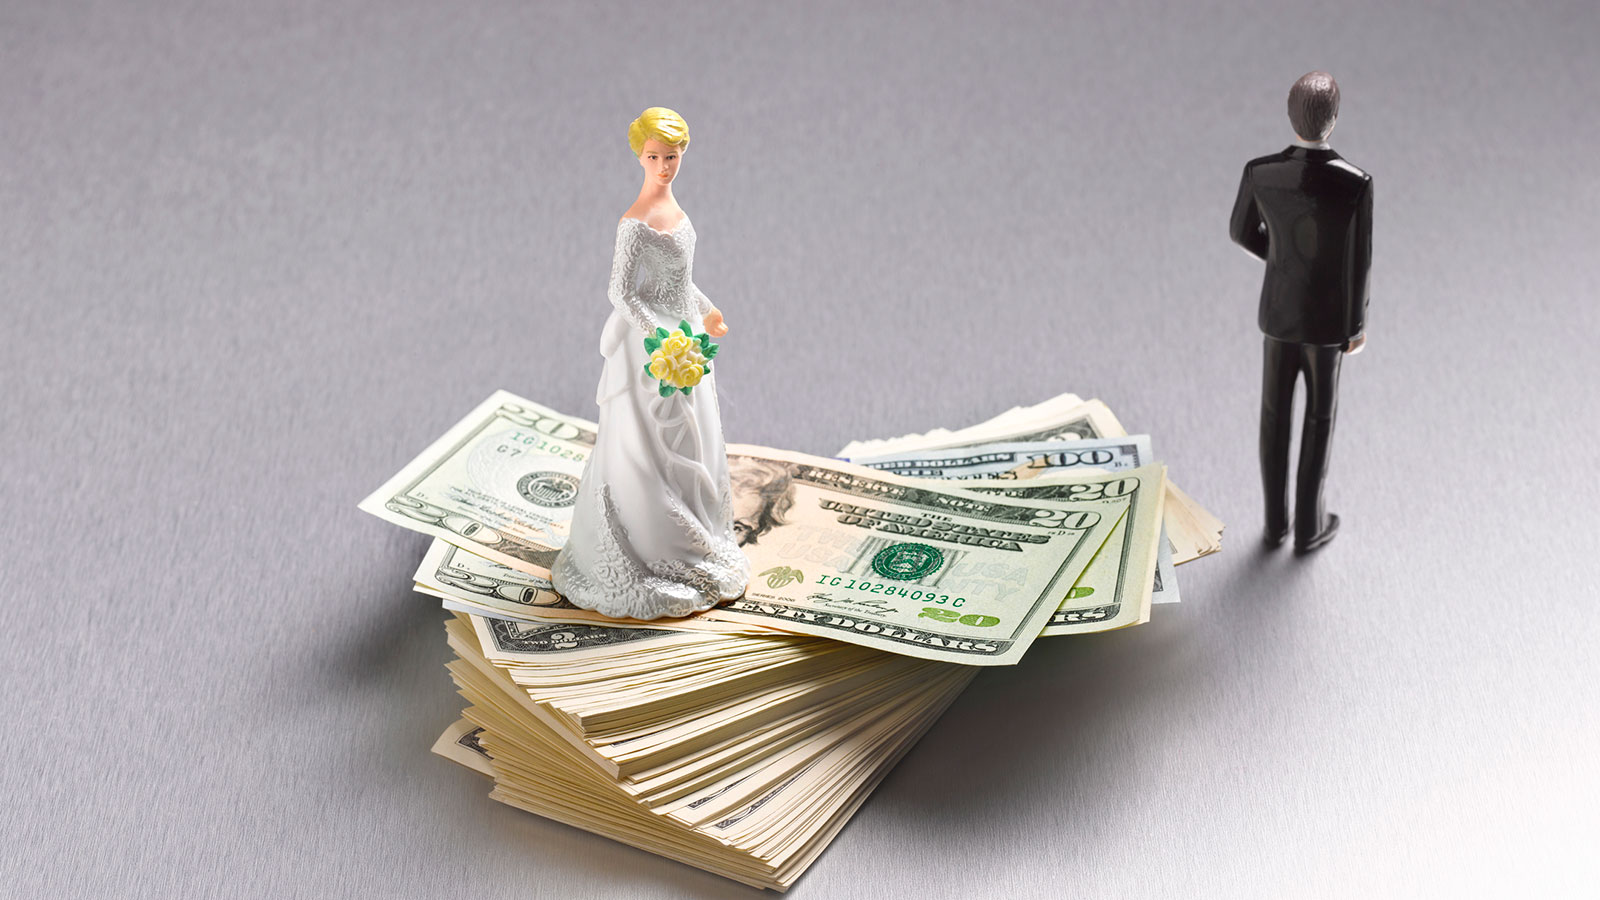 Who Qualifies for Alimony These Days? | HowStuffWorks